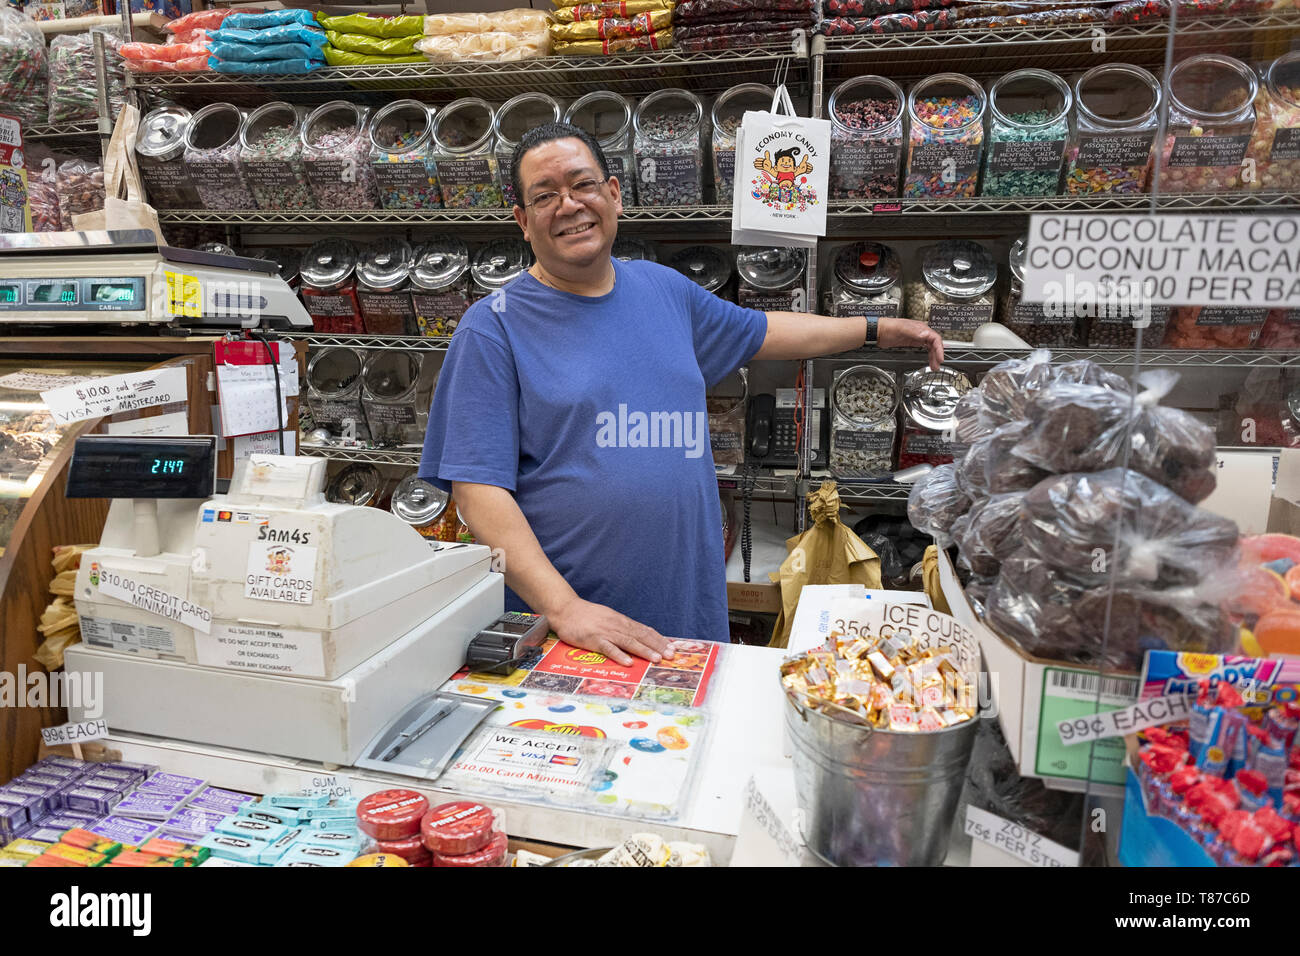 A longtime worker behind the counter at the iconic ECONOMY CANDY on Rivington Street on the lower east side of Manhattan, New York City - Stock Image